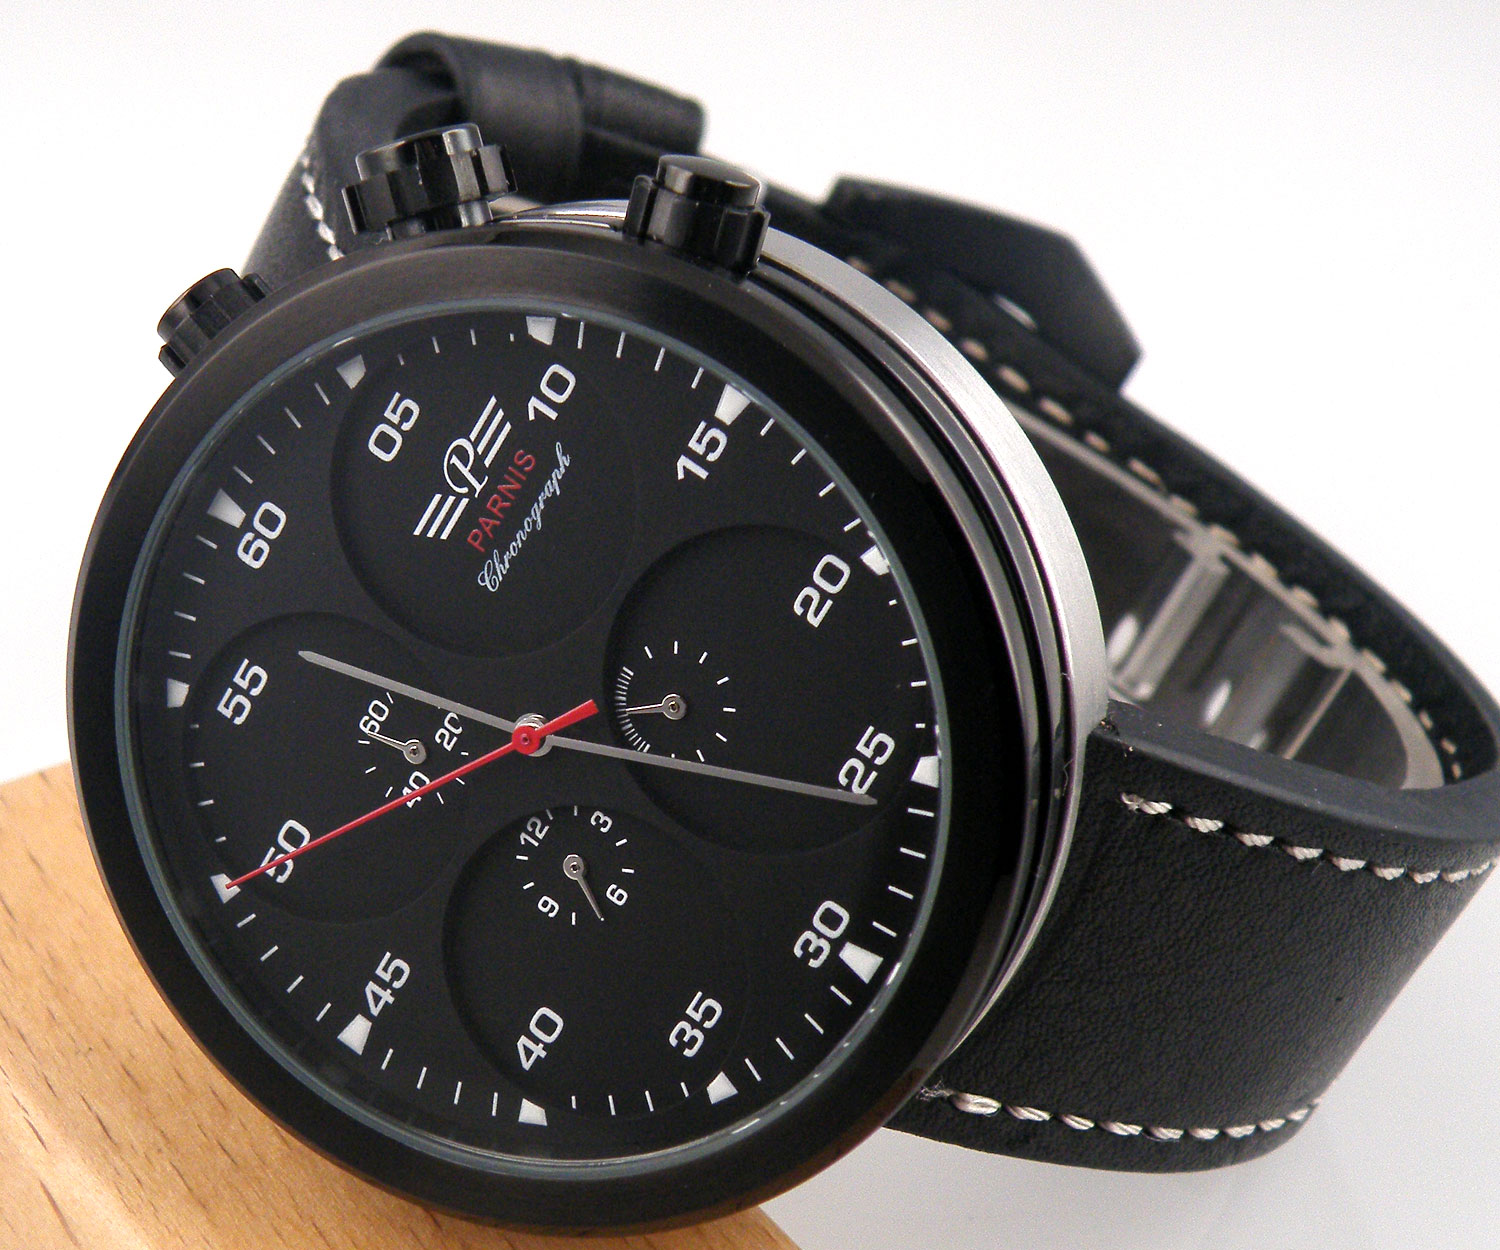 Parnis PN-508 PVD Stopwatch